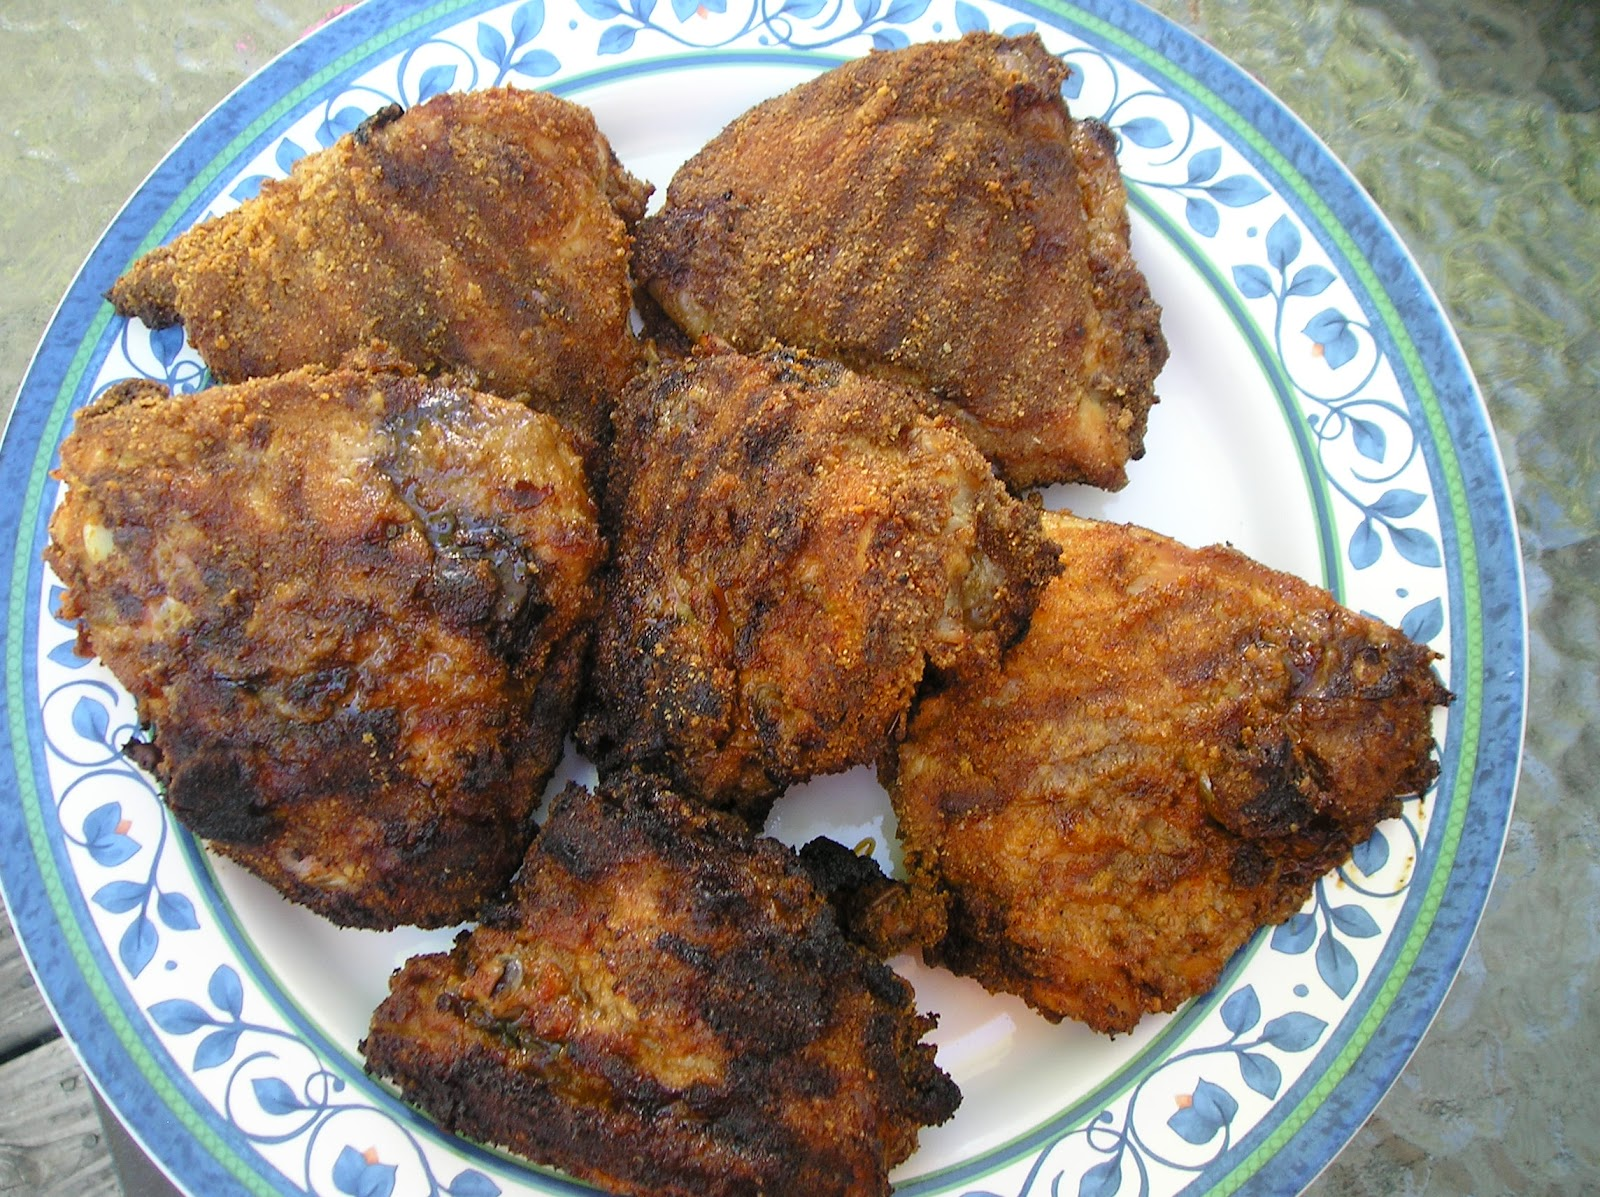 ... crispy breaded chicken thighs cooked on the grill breaded chicken